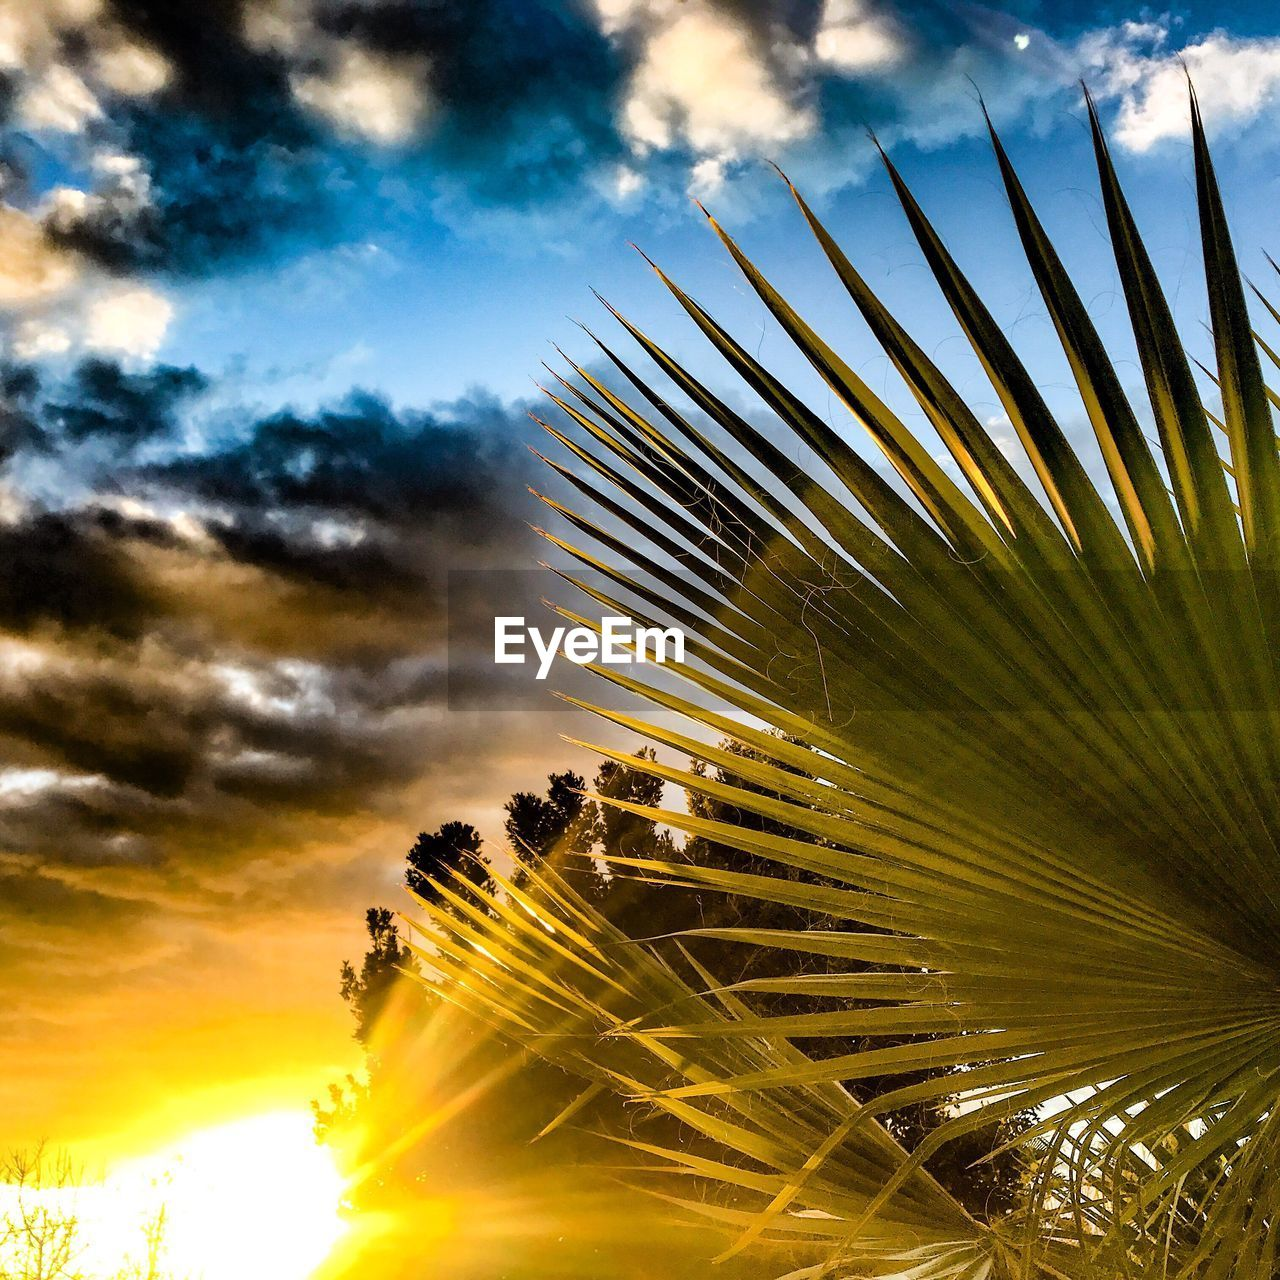 sky, palm tree, nature, cloud - sky, tree, no people, beauty in nature, outdoors, sunset, growth, low angle view, close-up, day, city